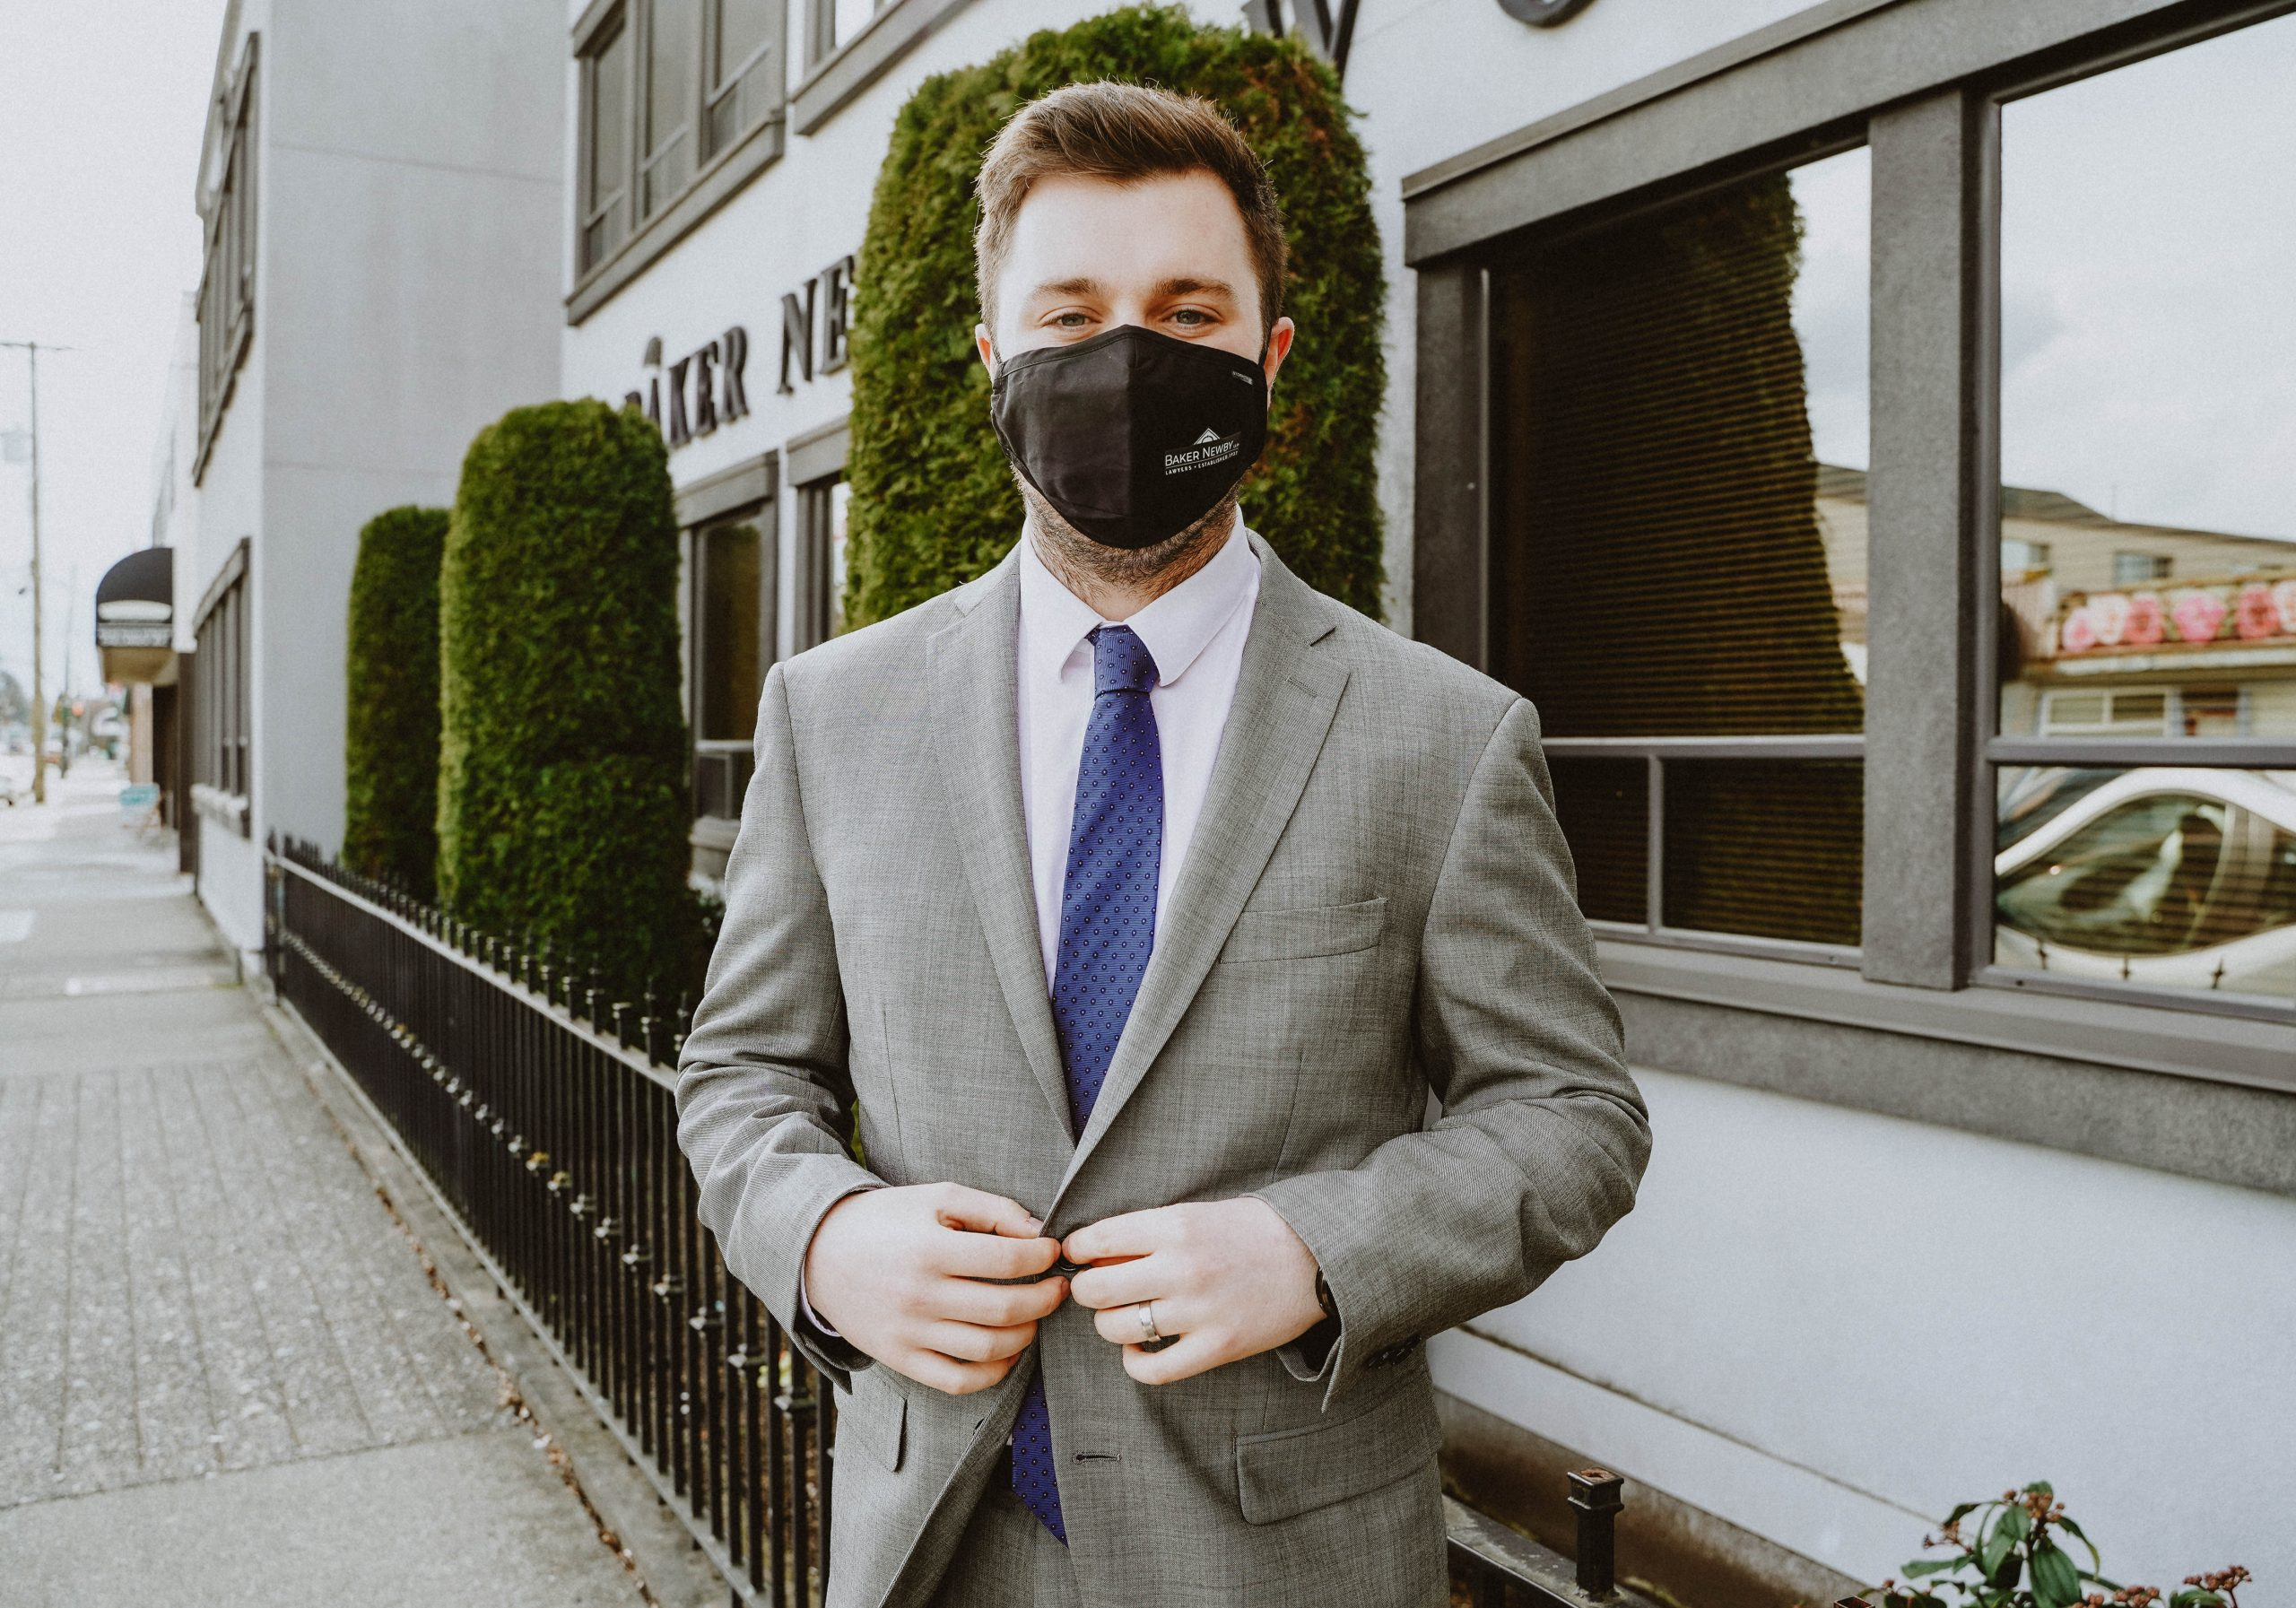 Baker Newby Lawyer with a mask